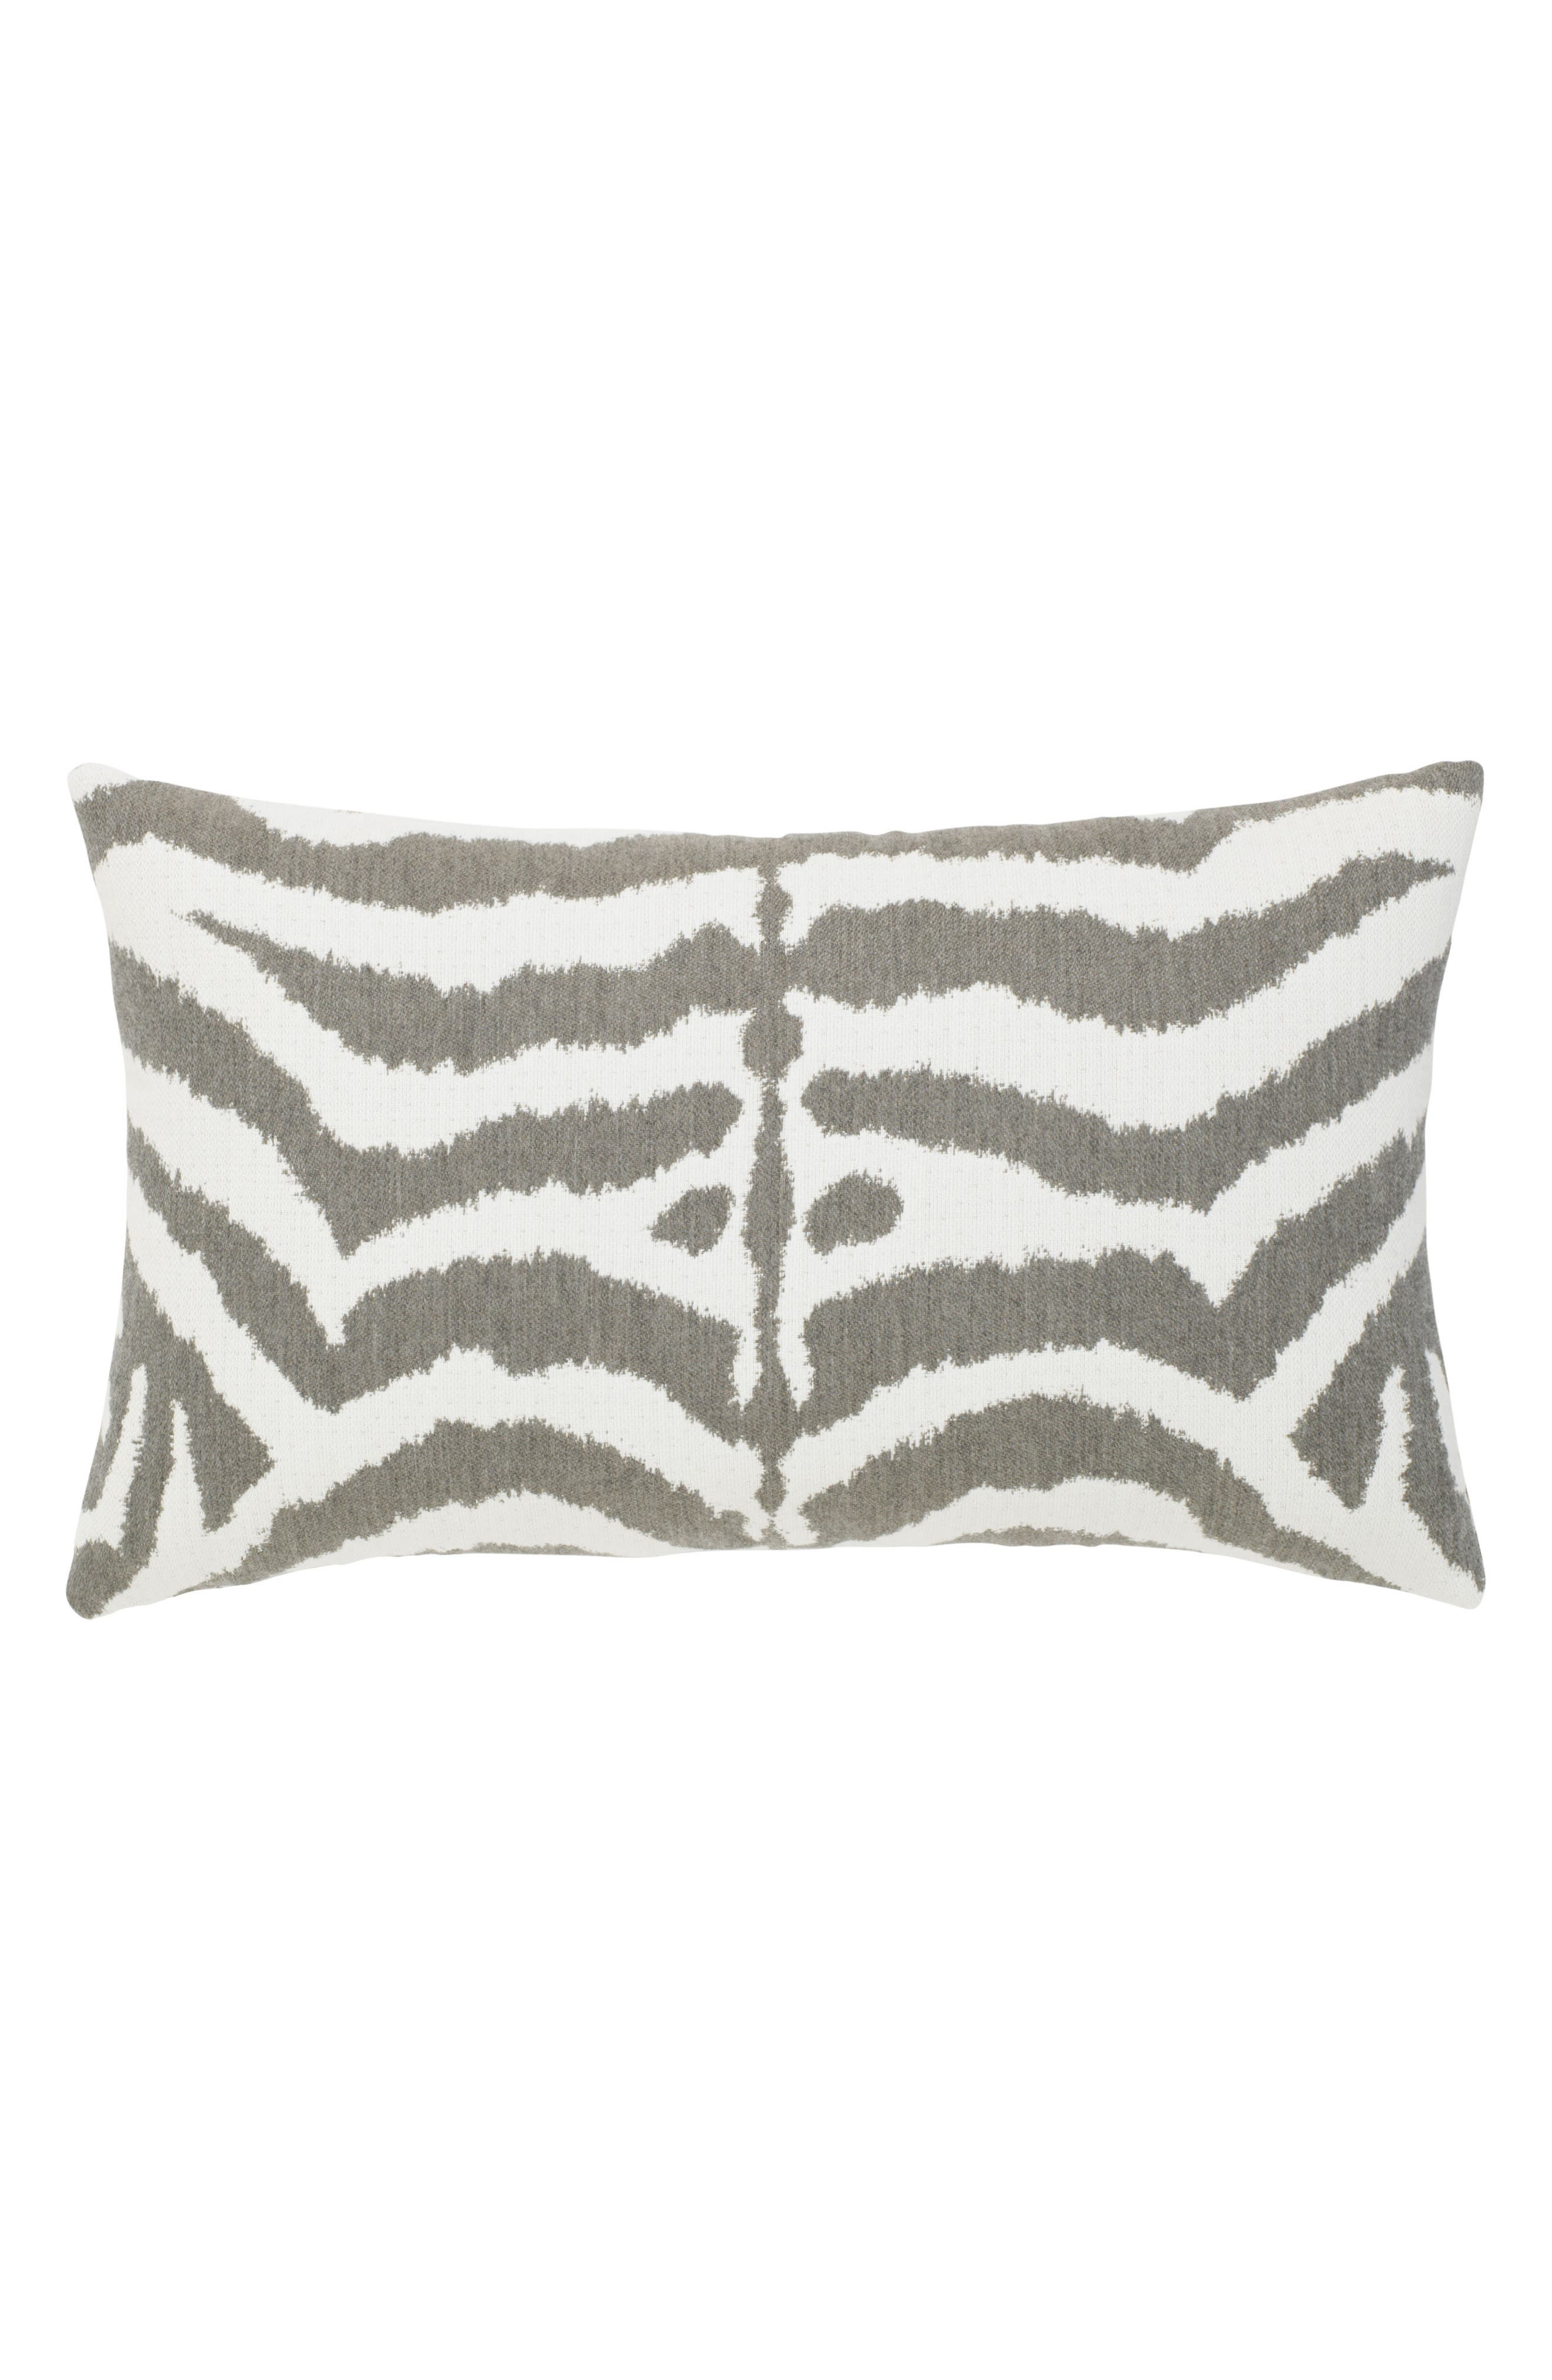 Zebra Gray Indoor/Outdoor Accent Pillow,                         Main,                         color, GRAY WHITE